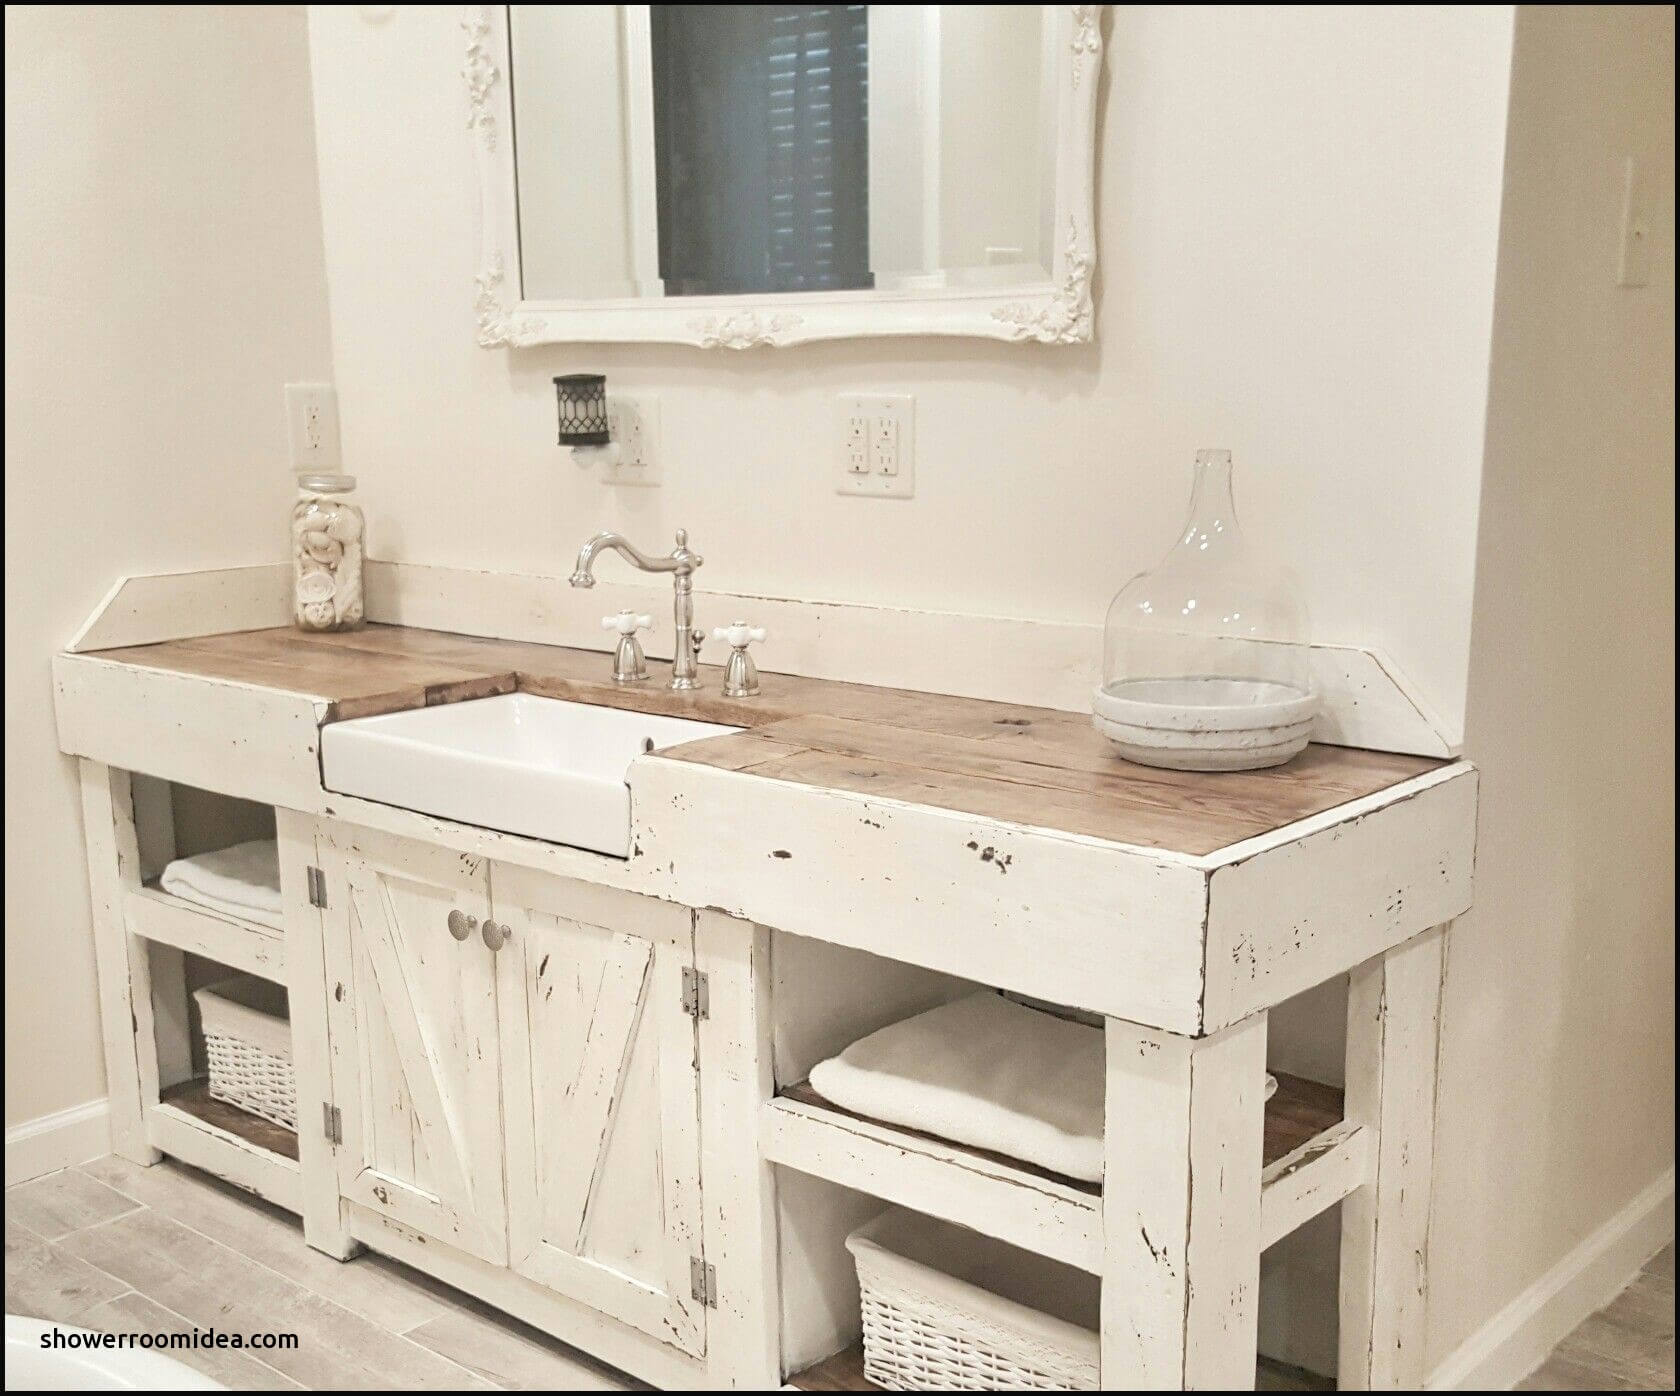 Ideas para Decorar un Baño al Estilo Cottage